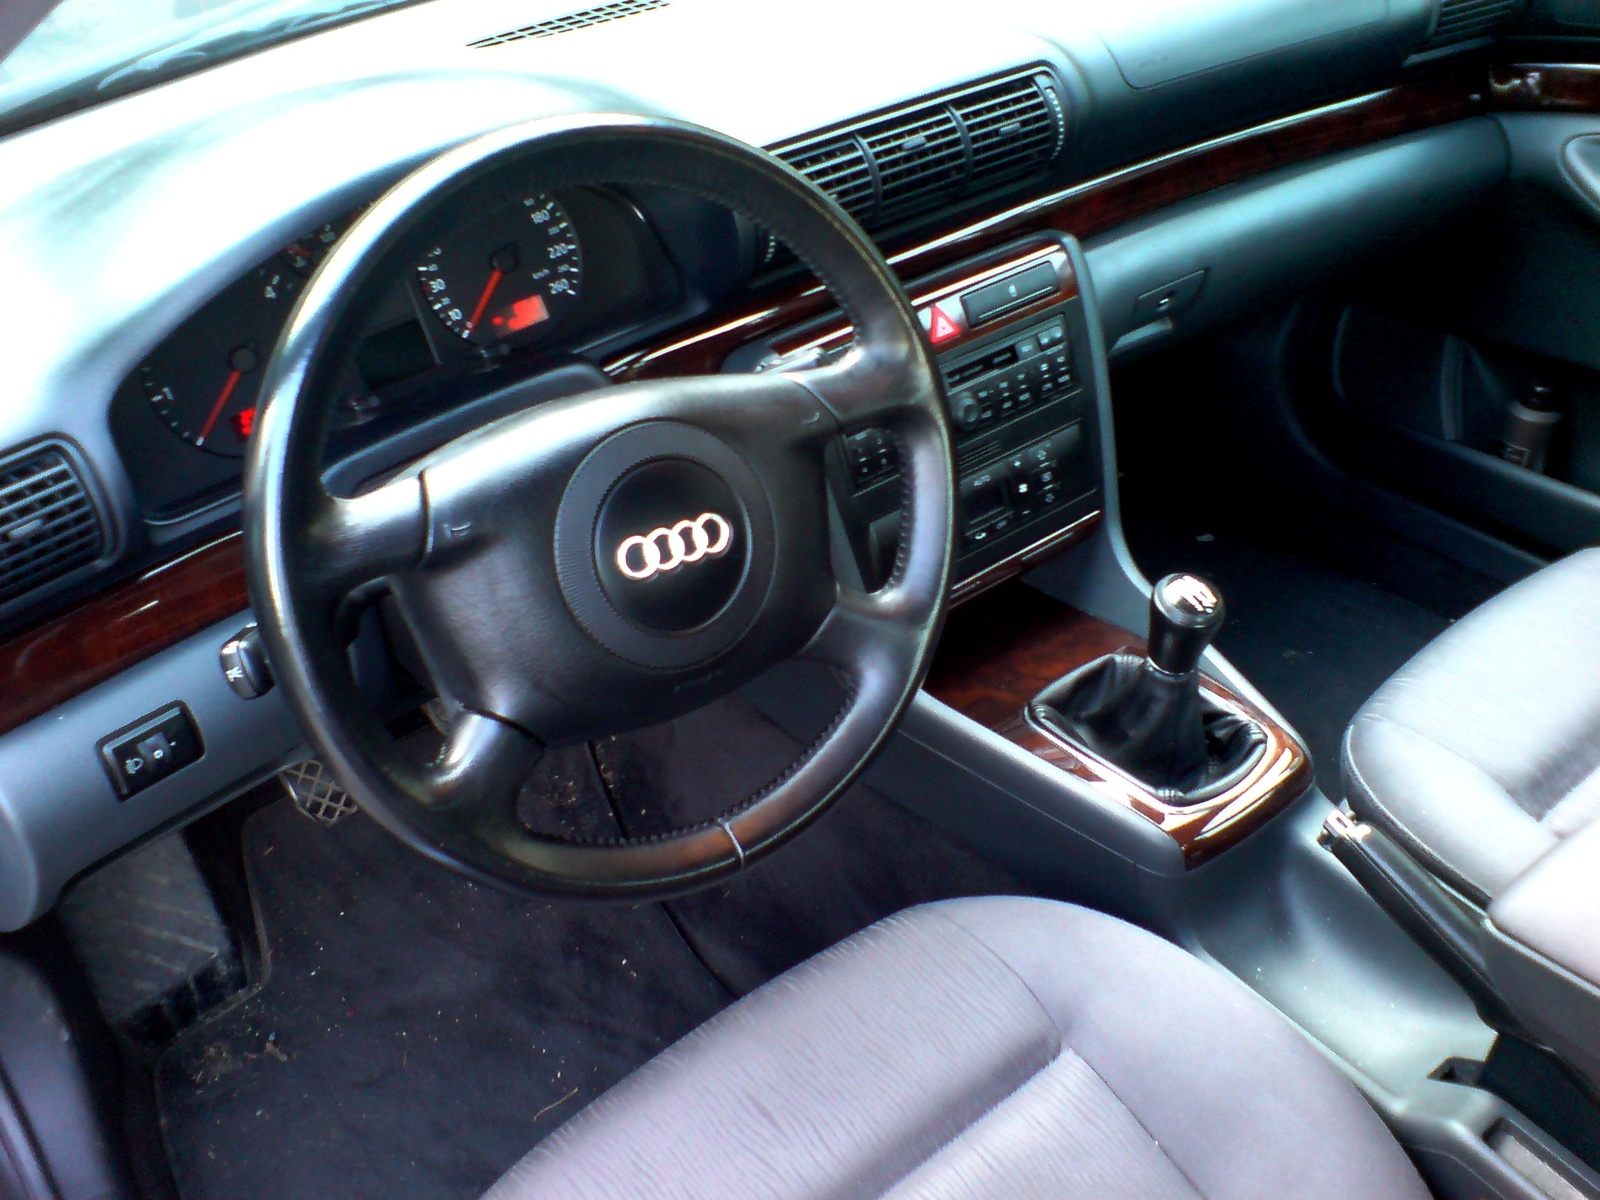 2001 audi a4 interior pictures cargurus. Black Bedroom Furniture Sets. Home Design Ideas